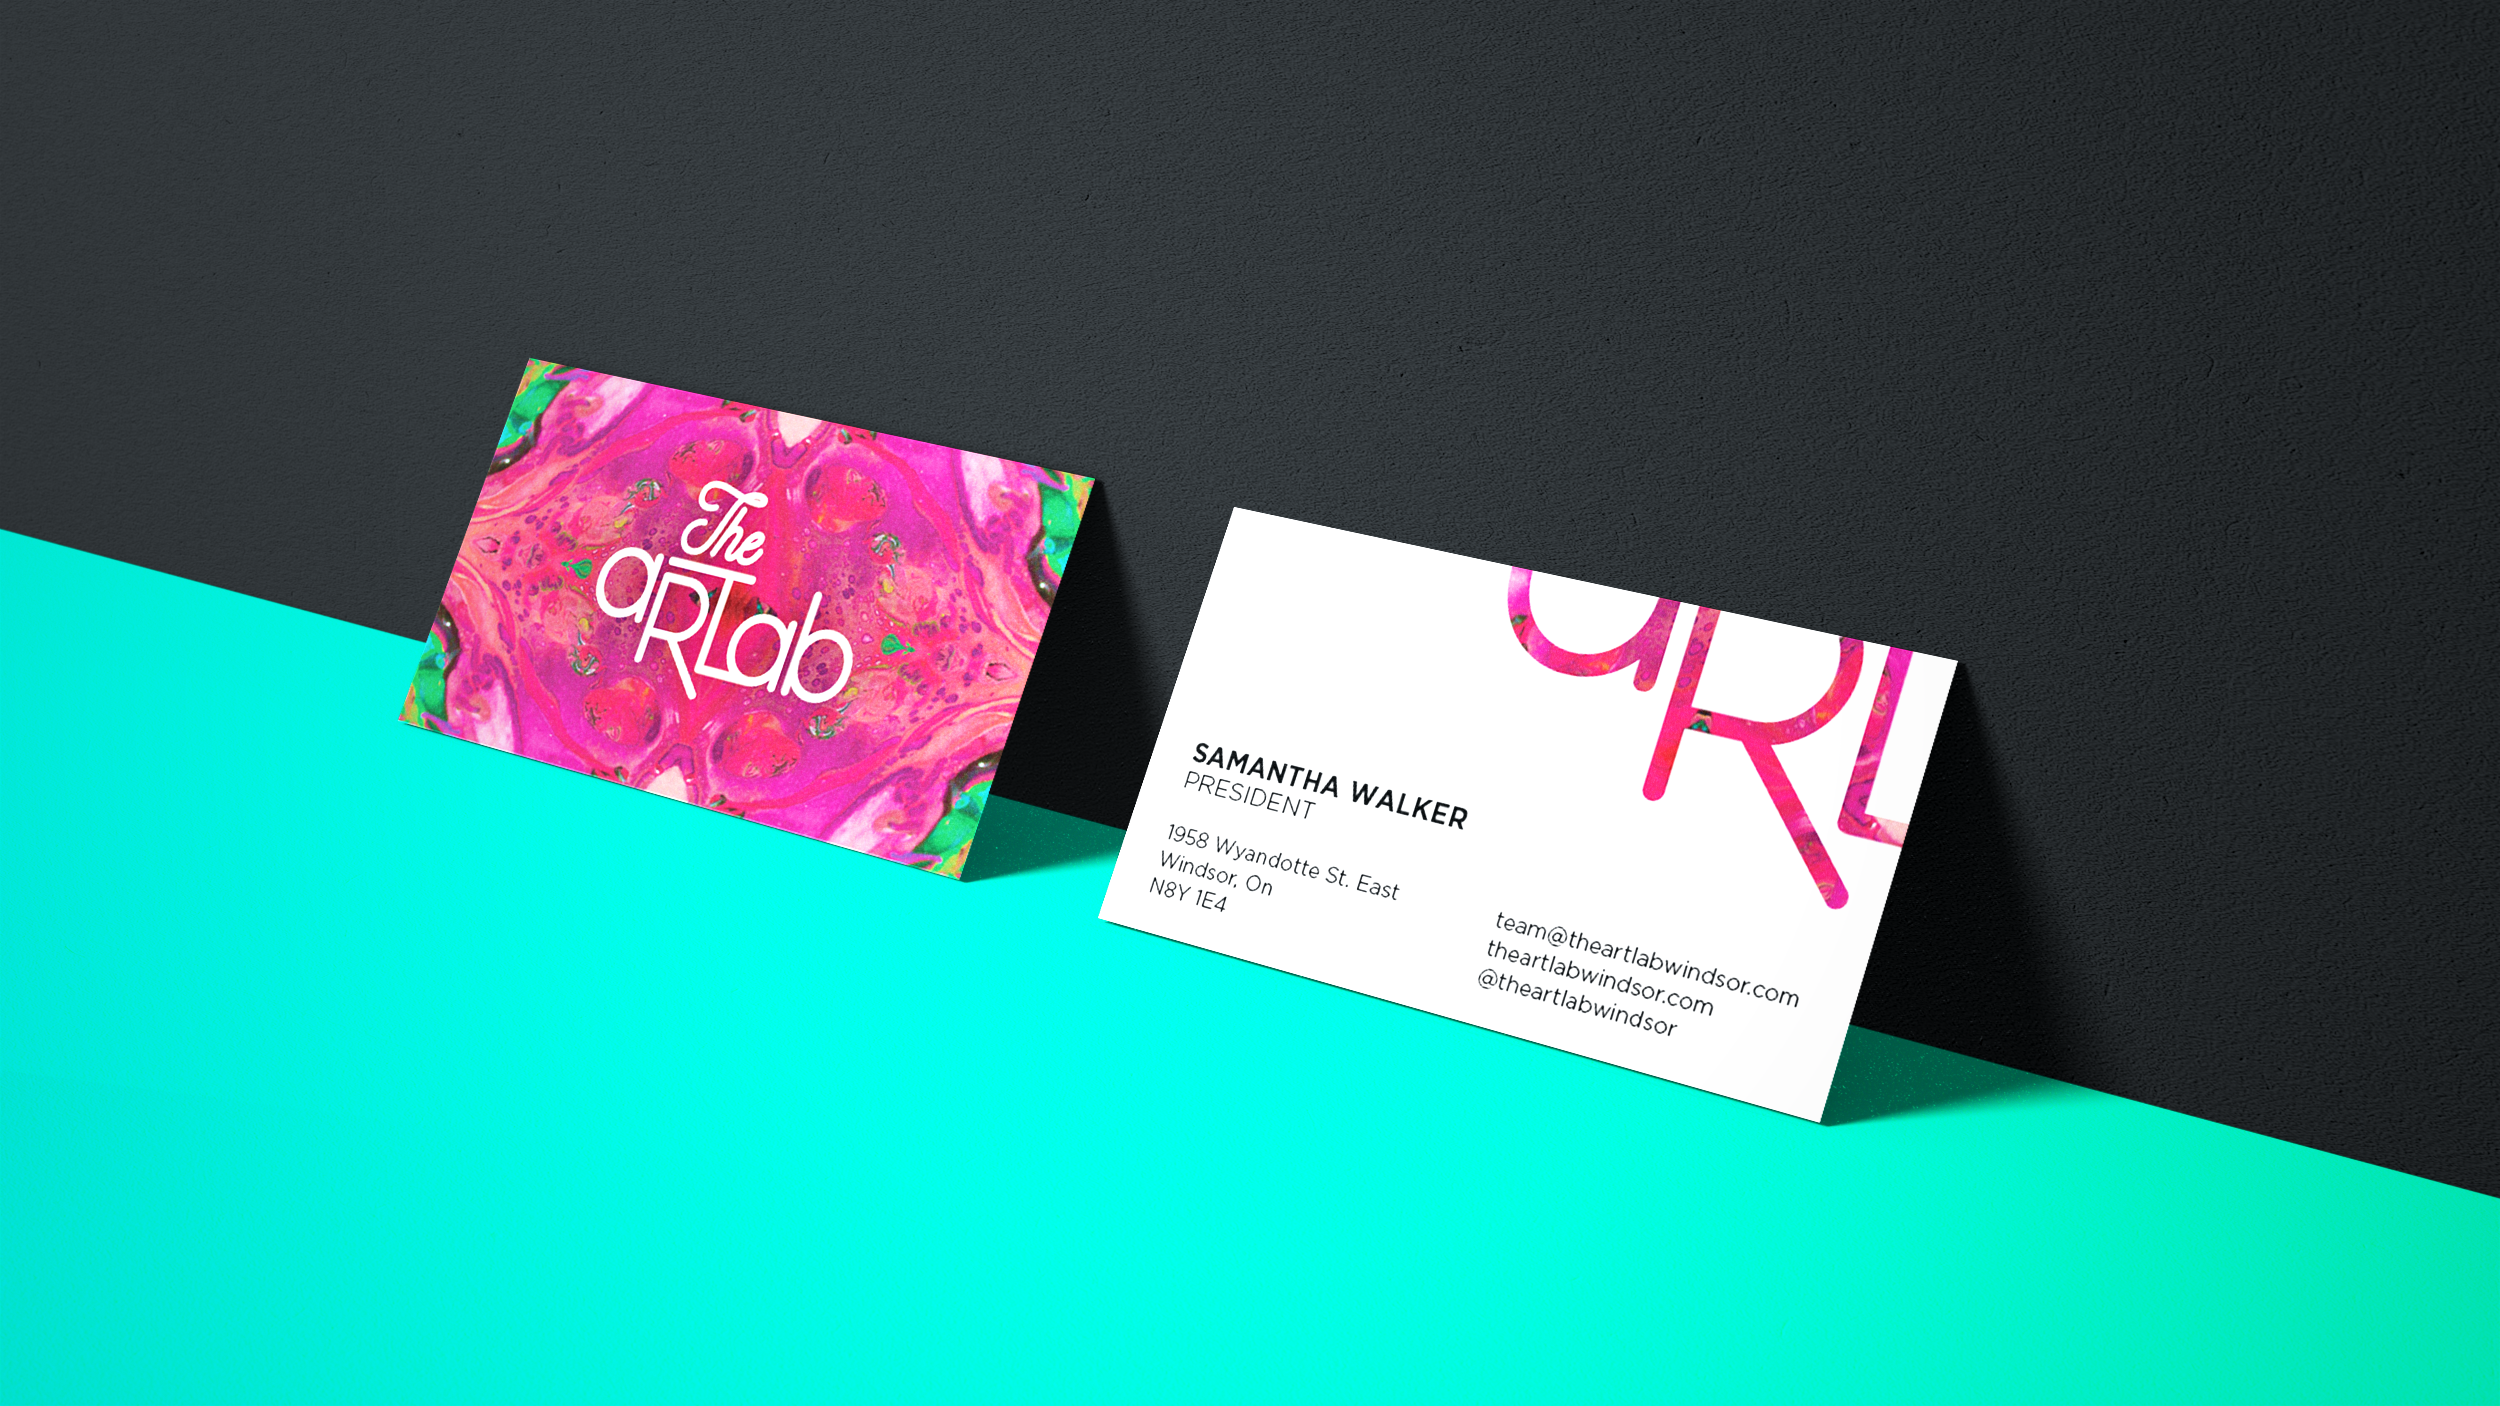 A sample of the business cards I created for The Art Lab Windsor's branding.